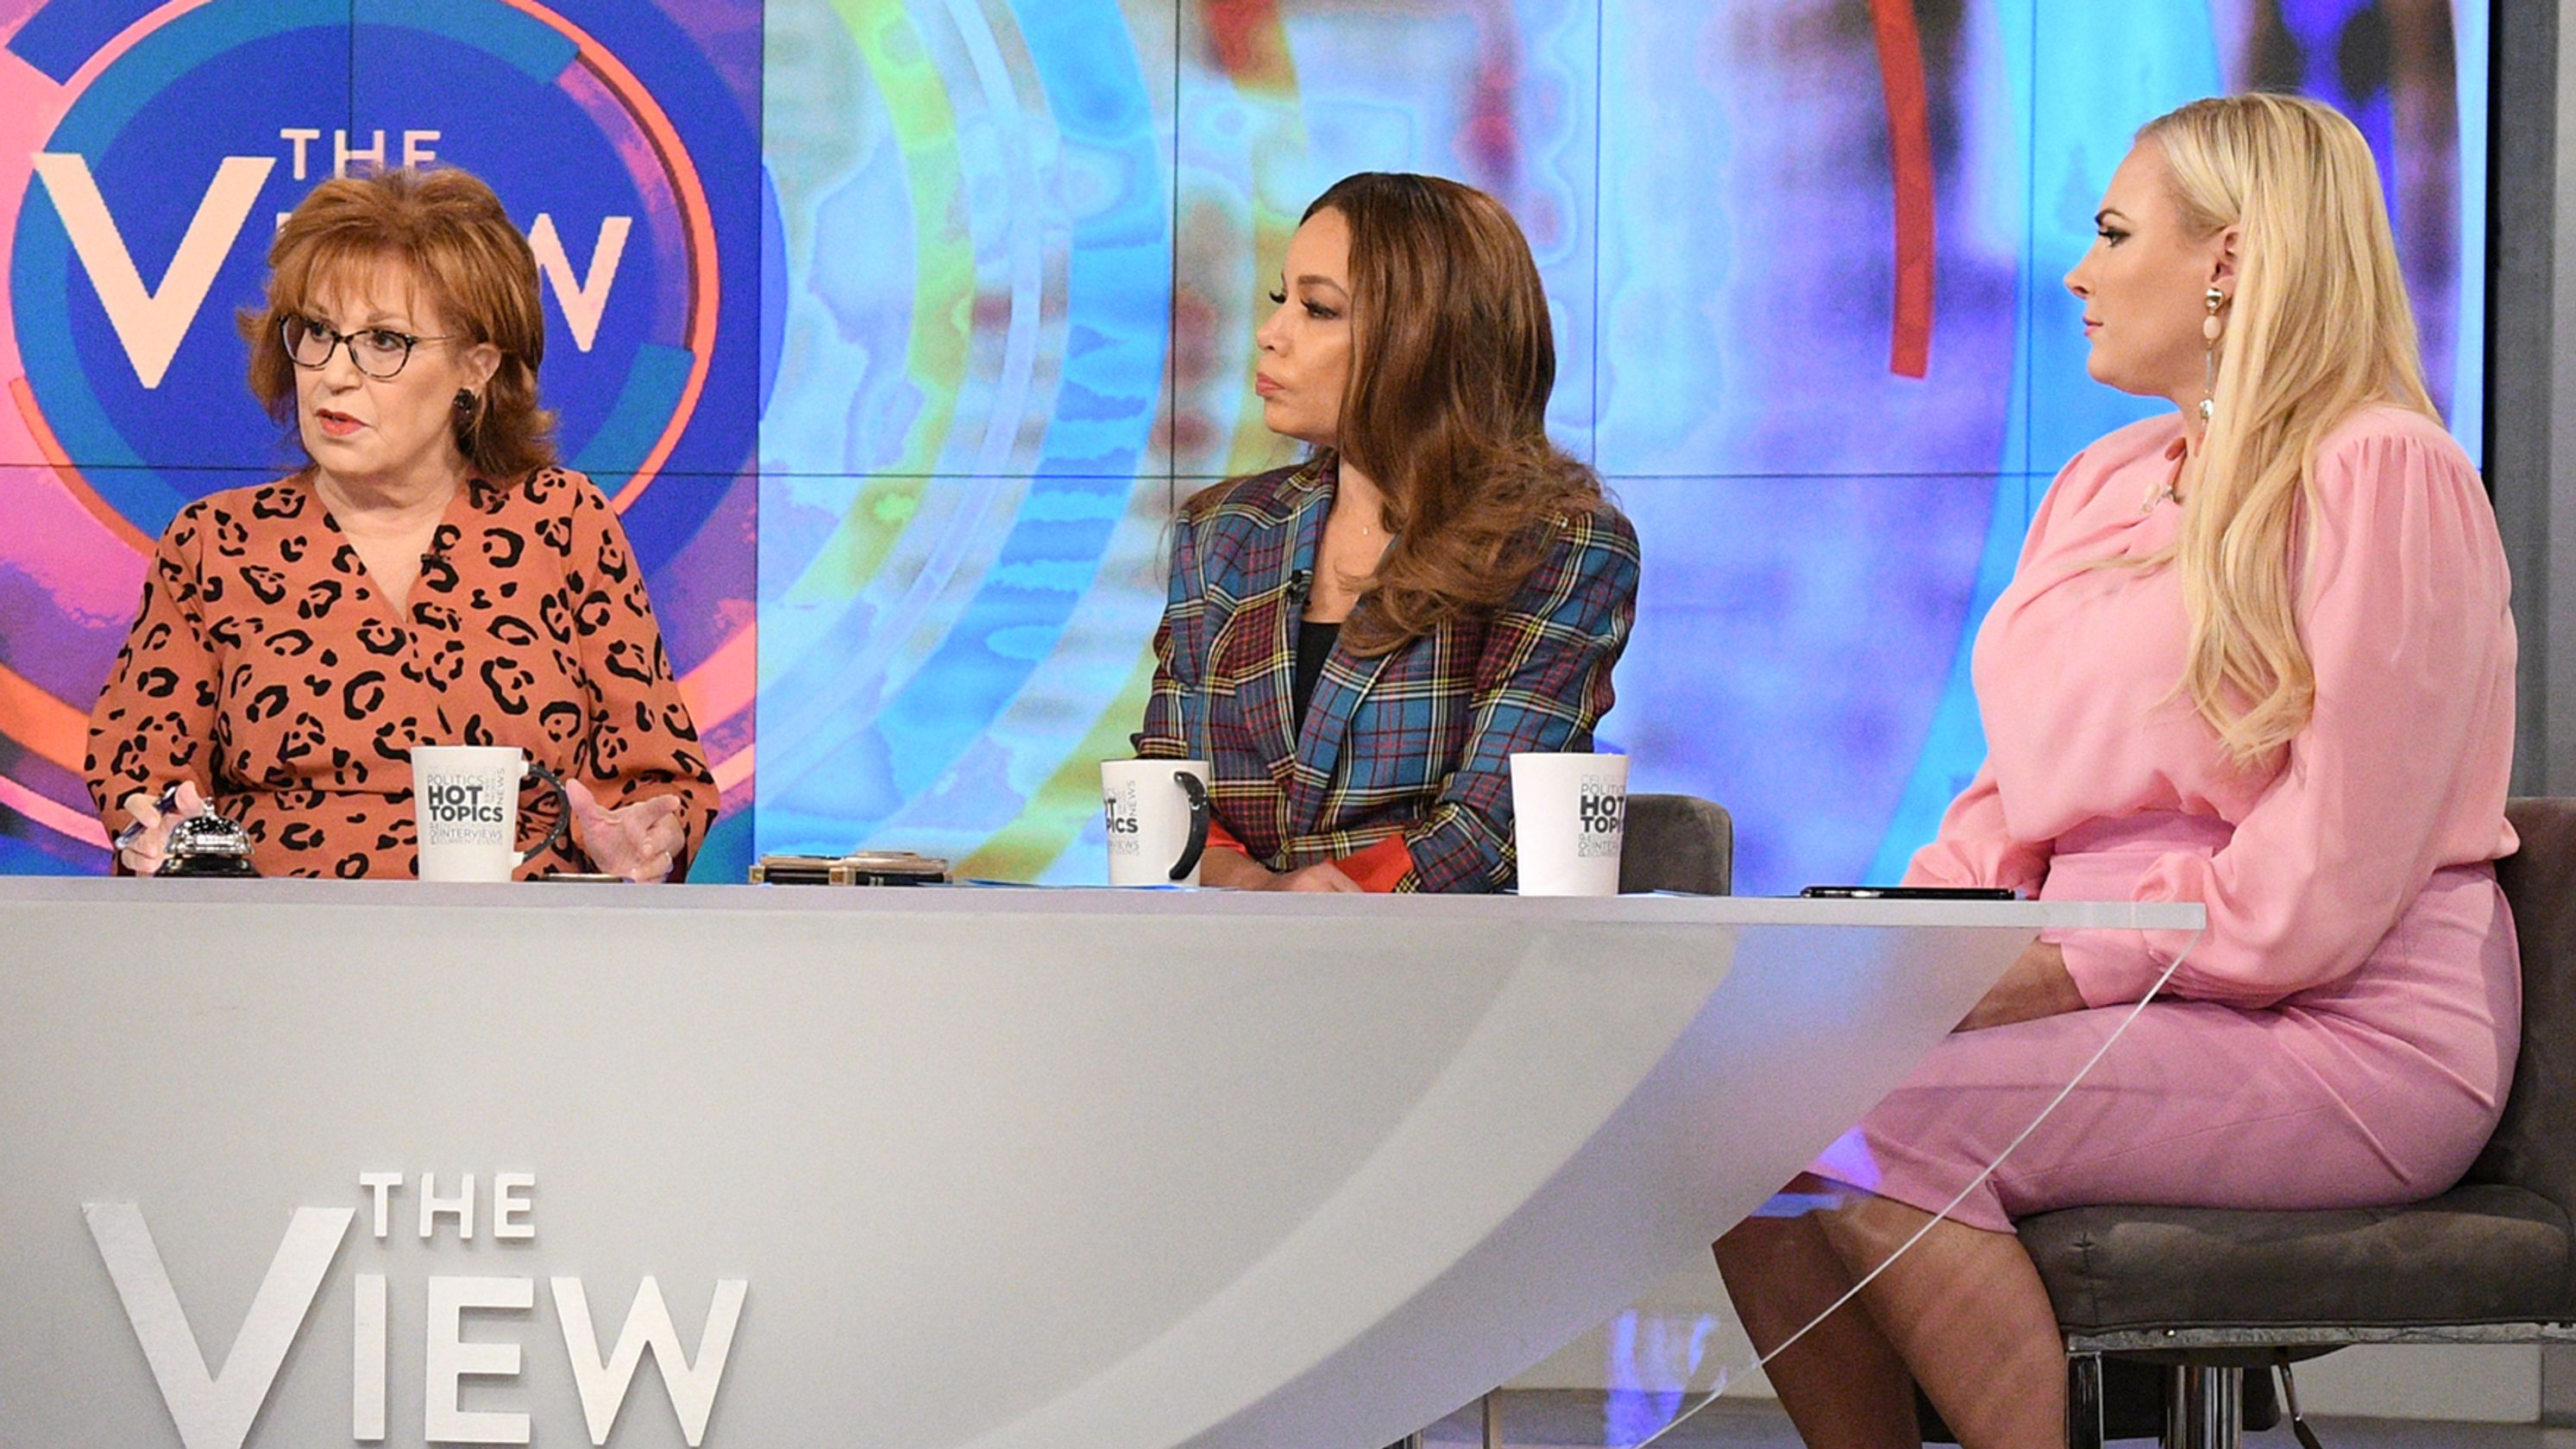 Bush tribute erupts into shouting match between Meghan McCain and Joy Behar on 'The View'